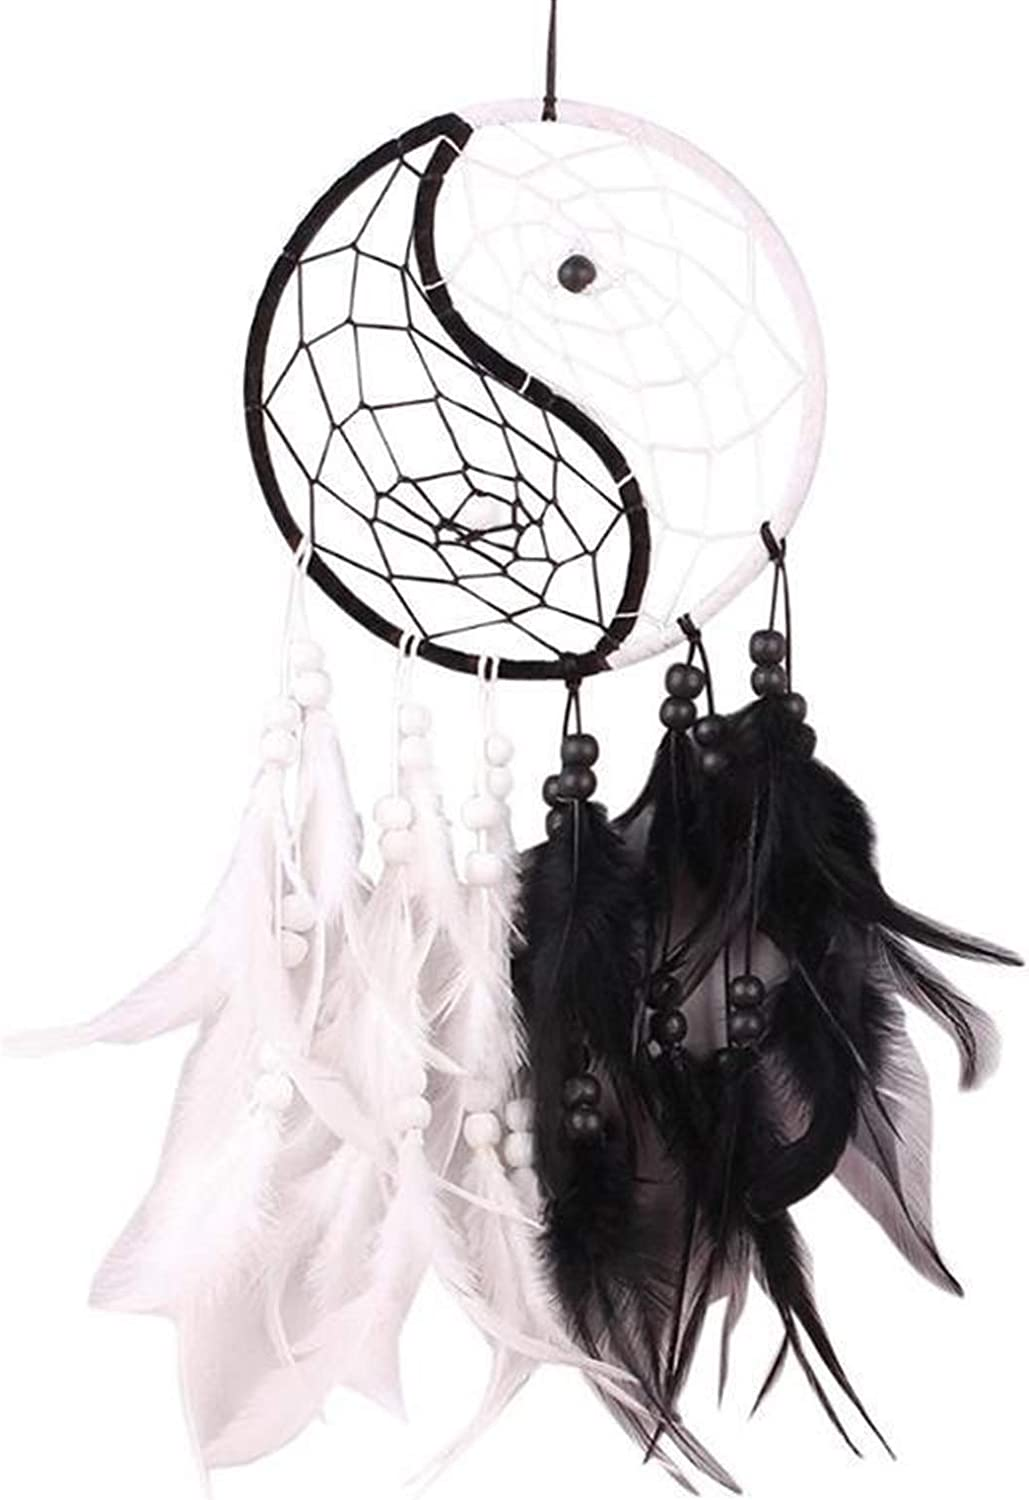 KSFBHC Handmade Dream Louisville-Jefferson County Mall Catchers Hanging Lace White Super special price Dreamca Flower